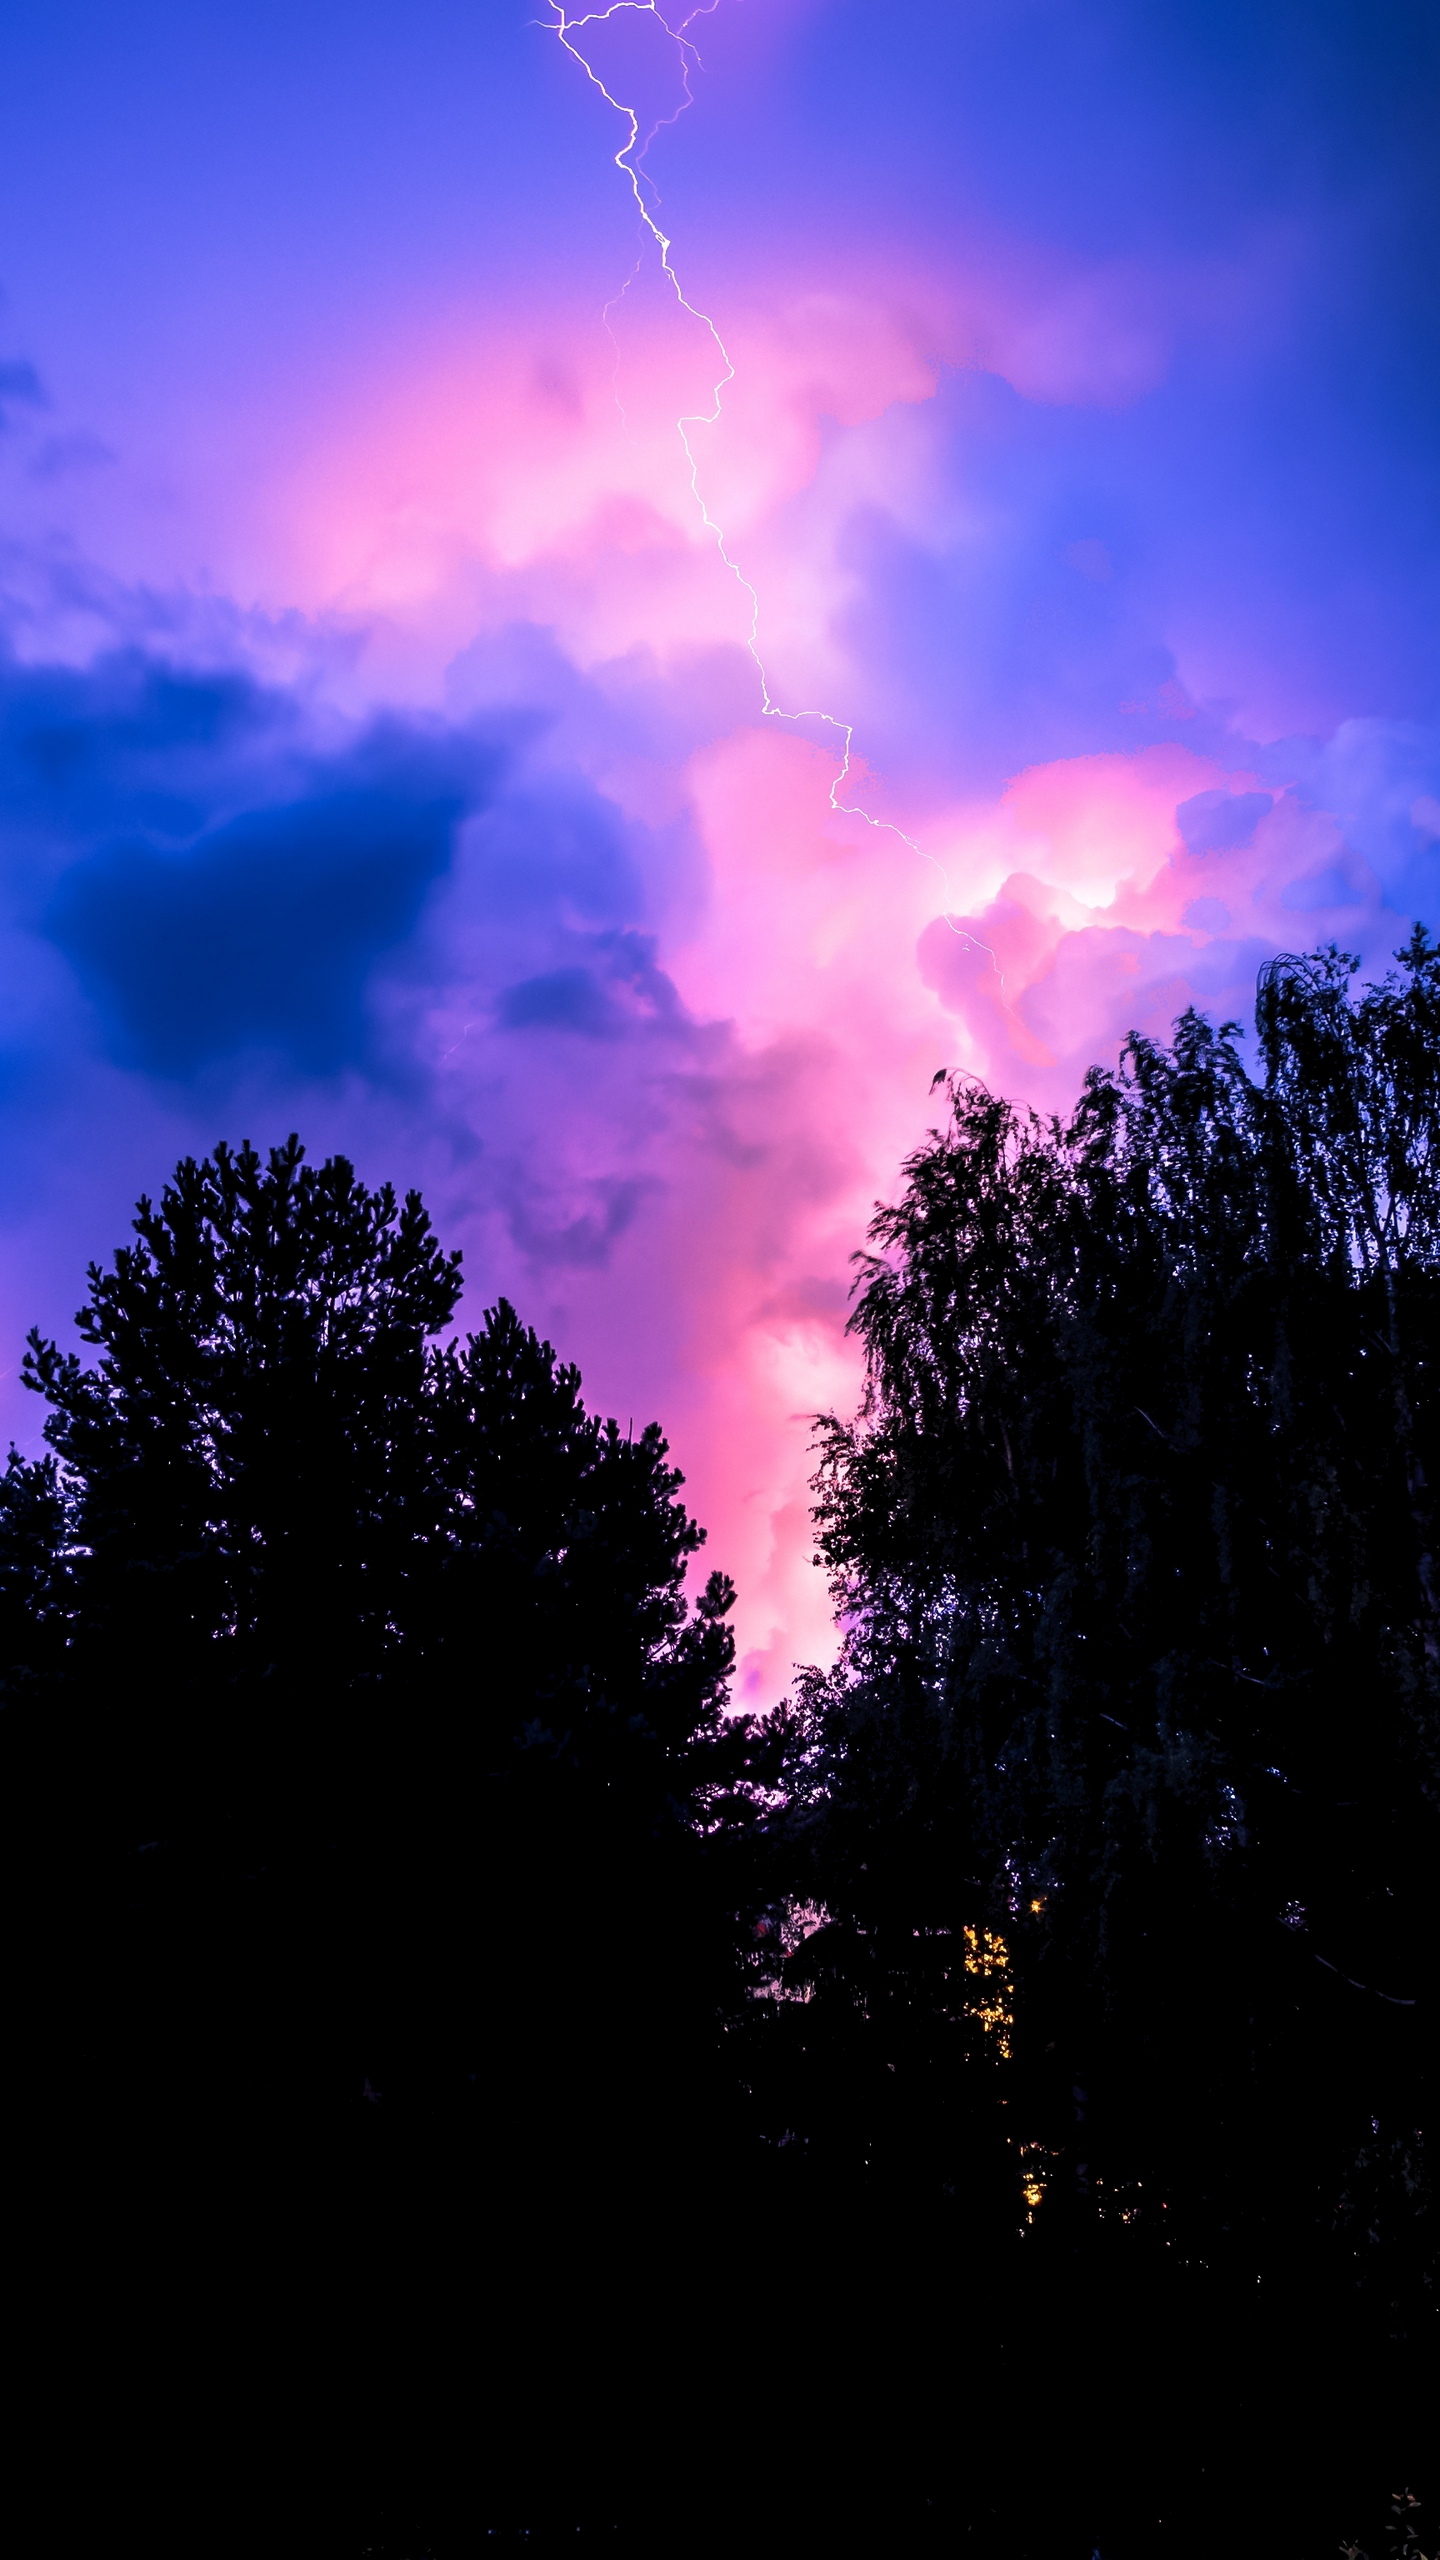 OLED wallpaper idownloadblog trees lightning clouds